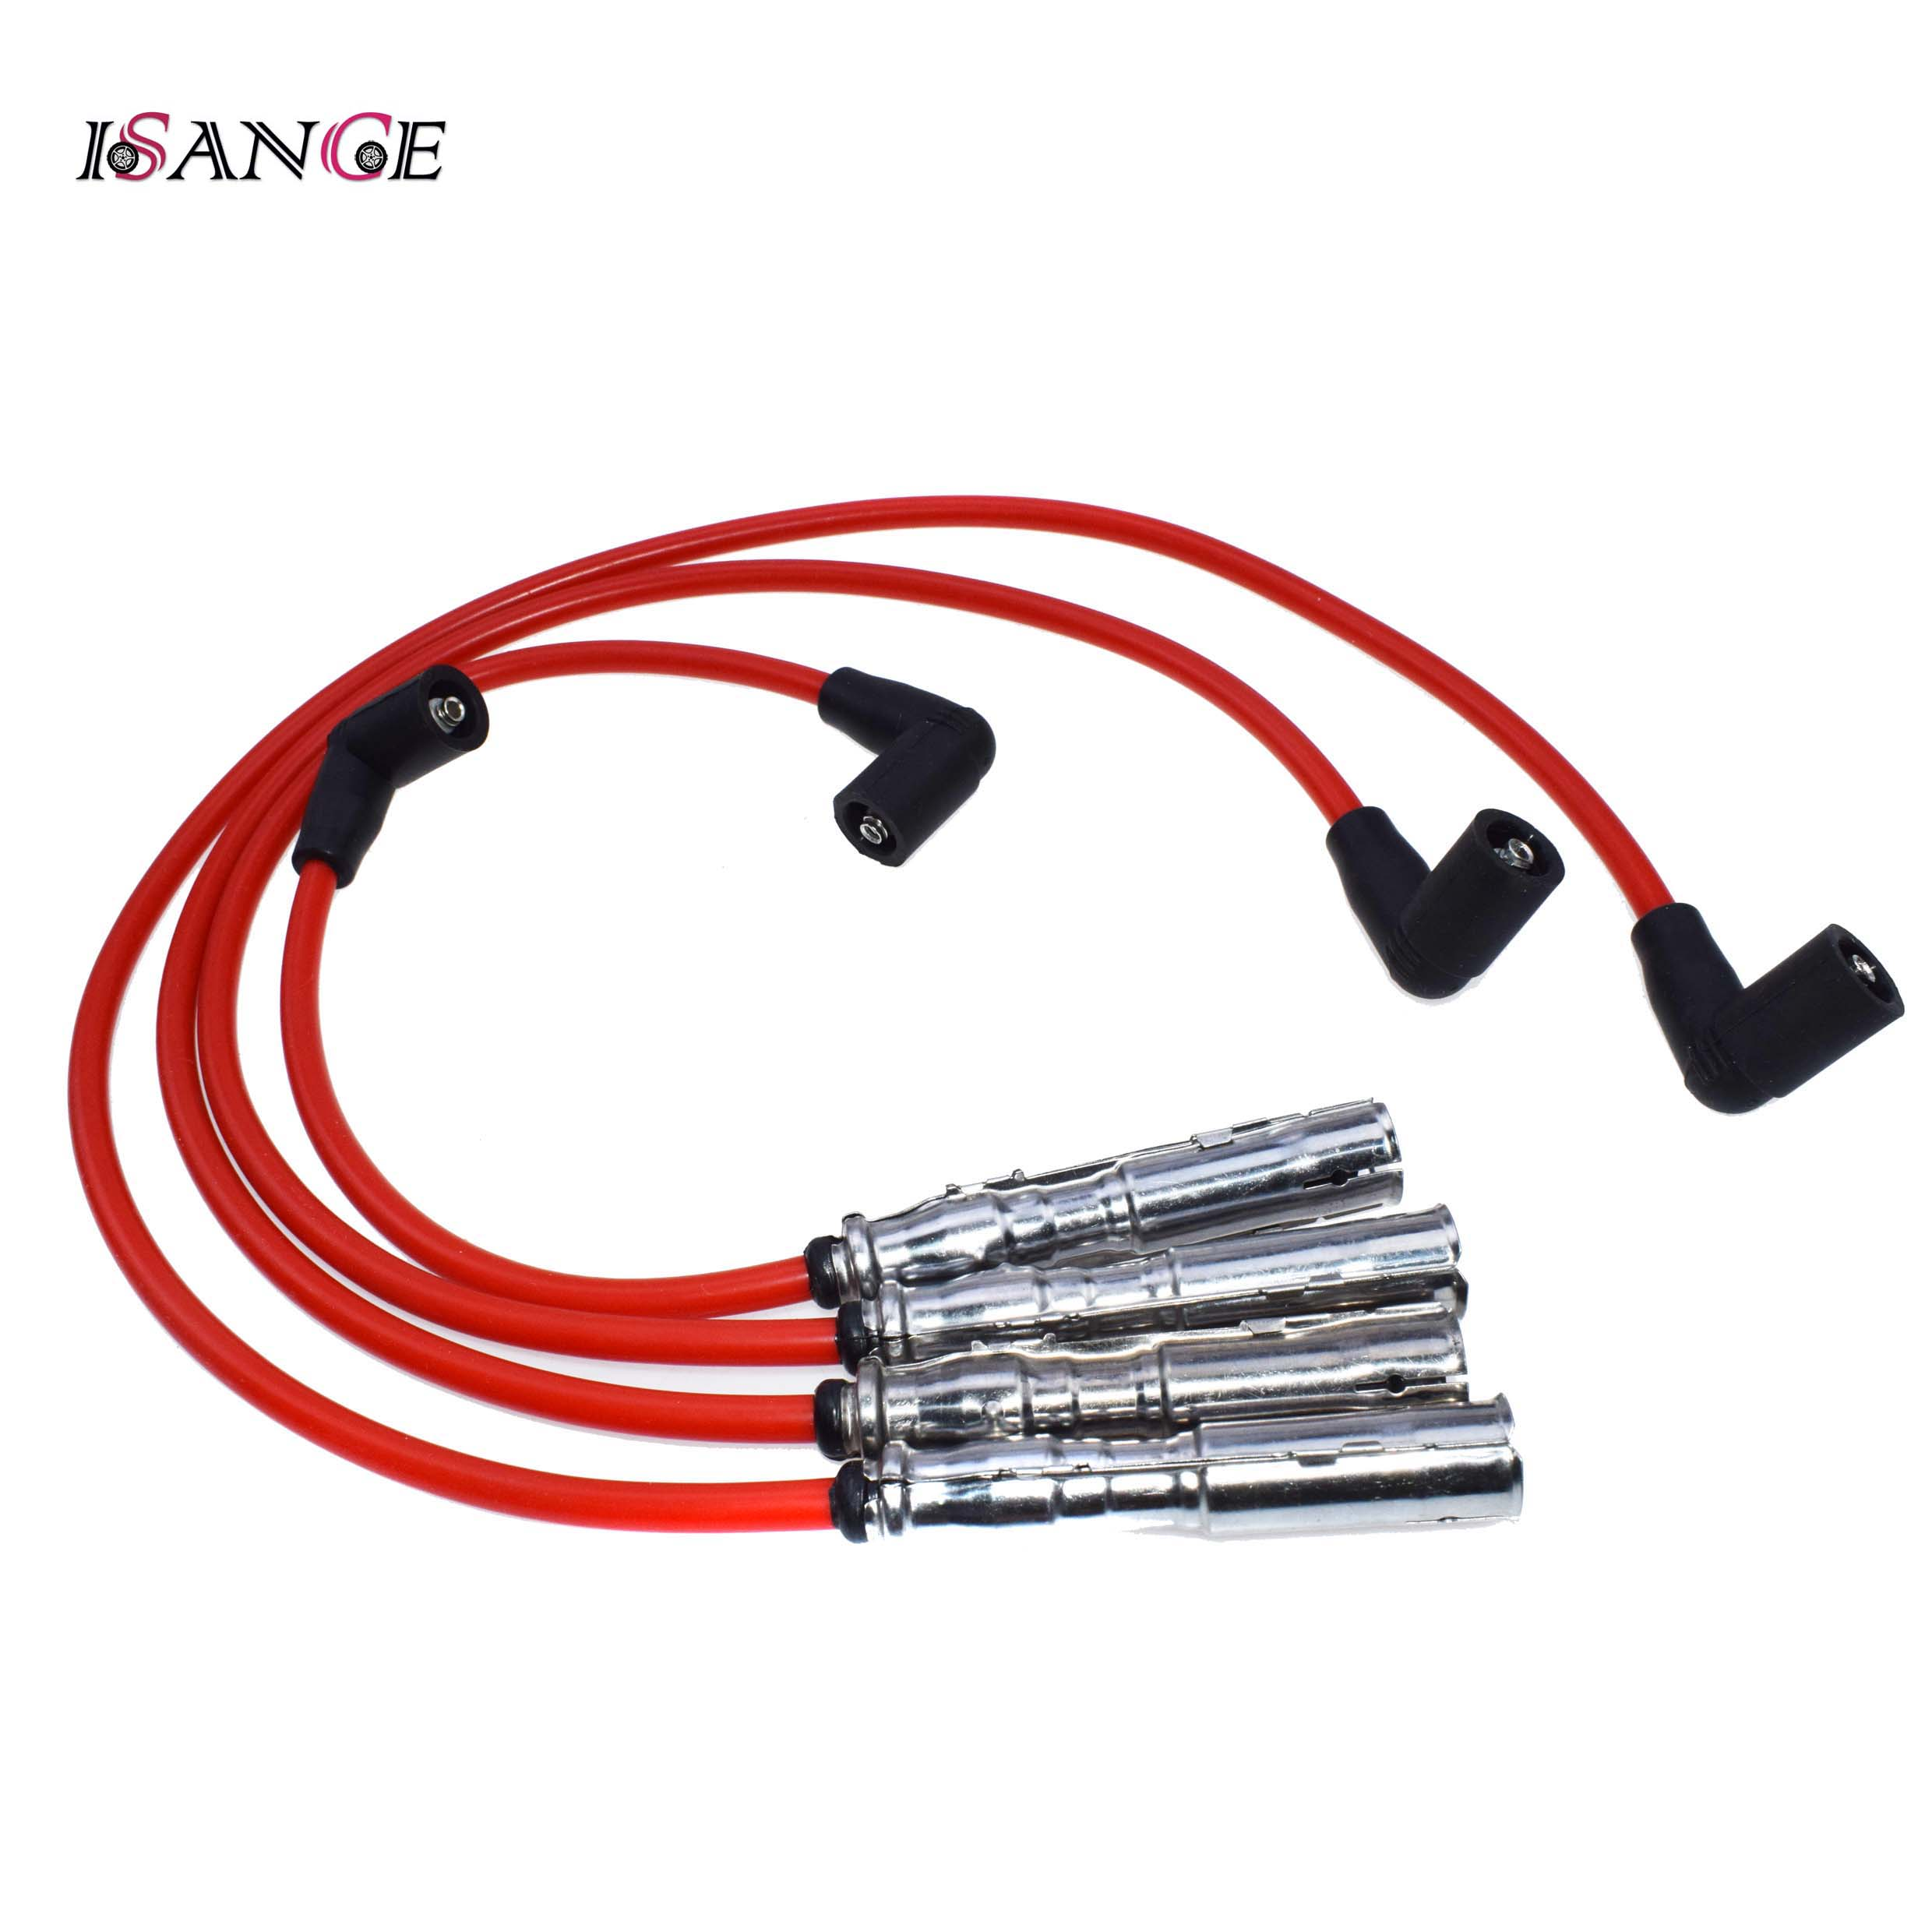 1set oem ignition leads cables wires kit v6 2 4 2 8 for a4 a6 a8 passat superb 078 905 113 078 905 531 532 533 534 535 536 b [ 2480 x 2480 Pixel ]